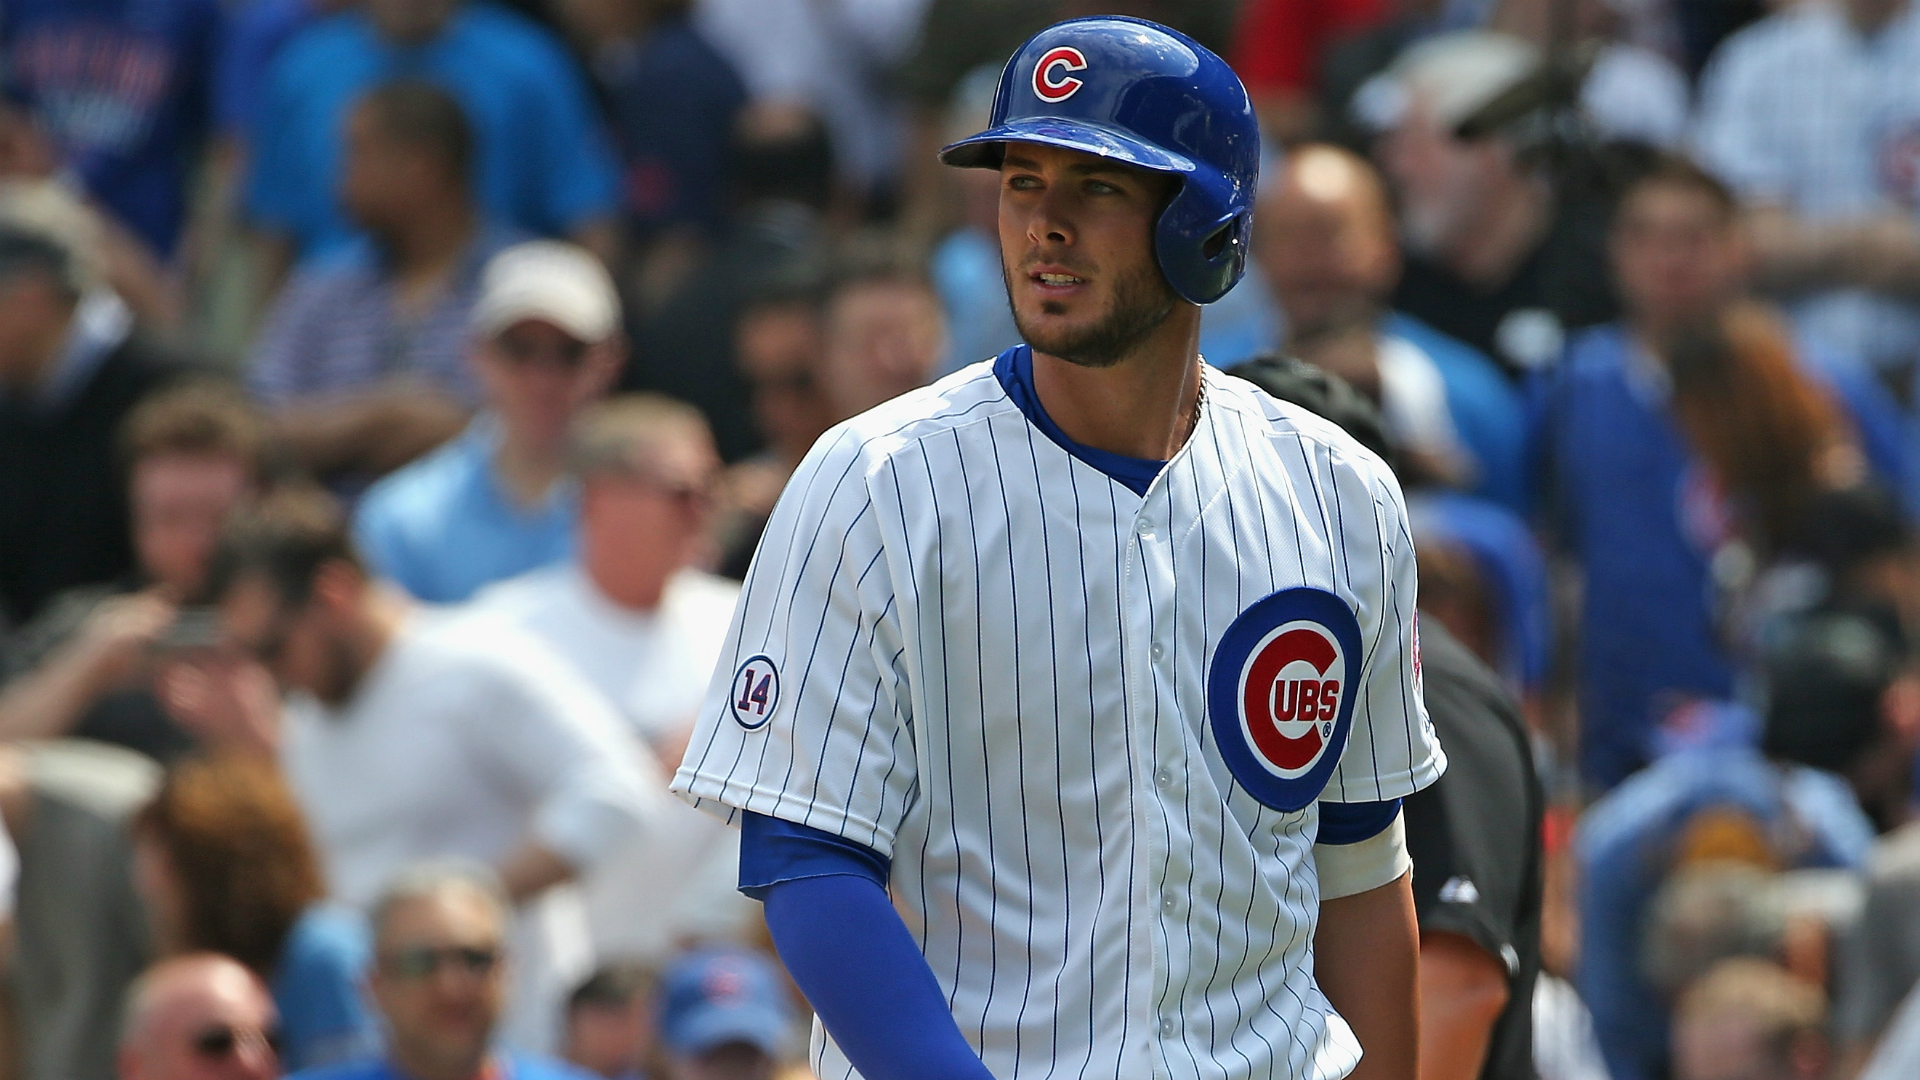 Cubs fan yells'You suck!' at Kris Bryant after third strikeout MLB Sporting News